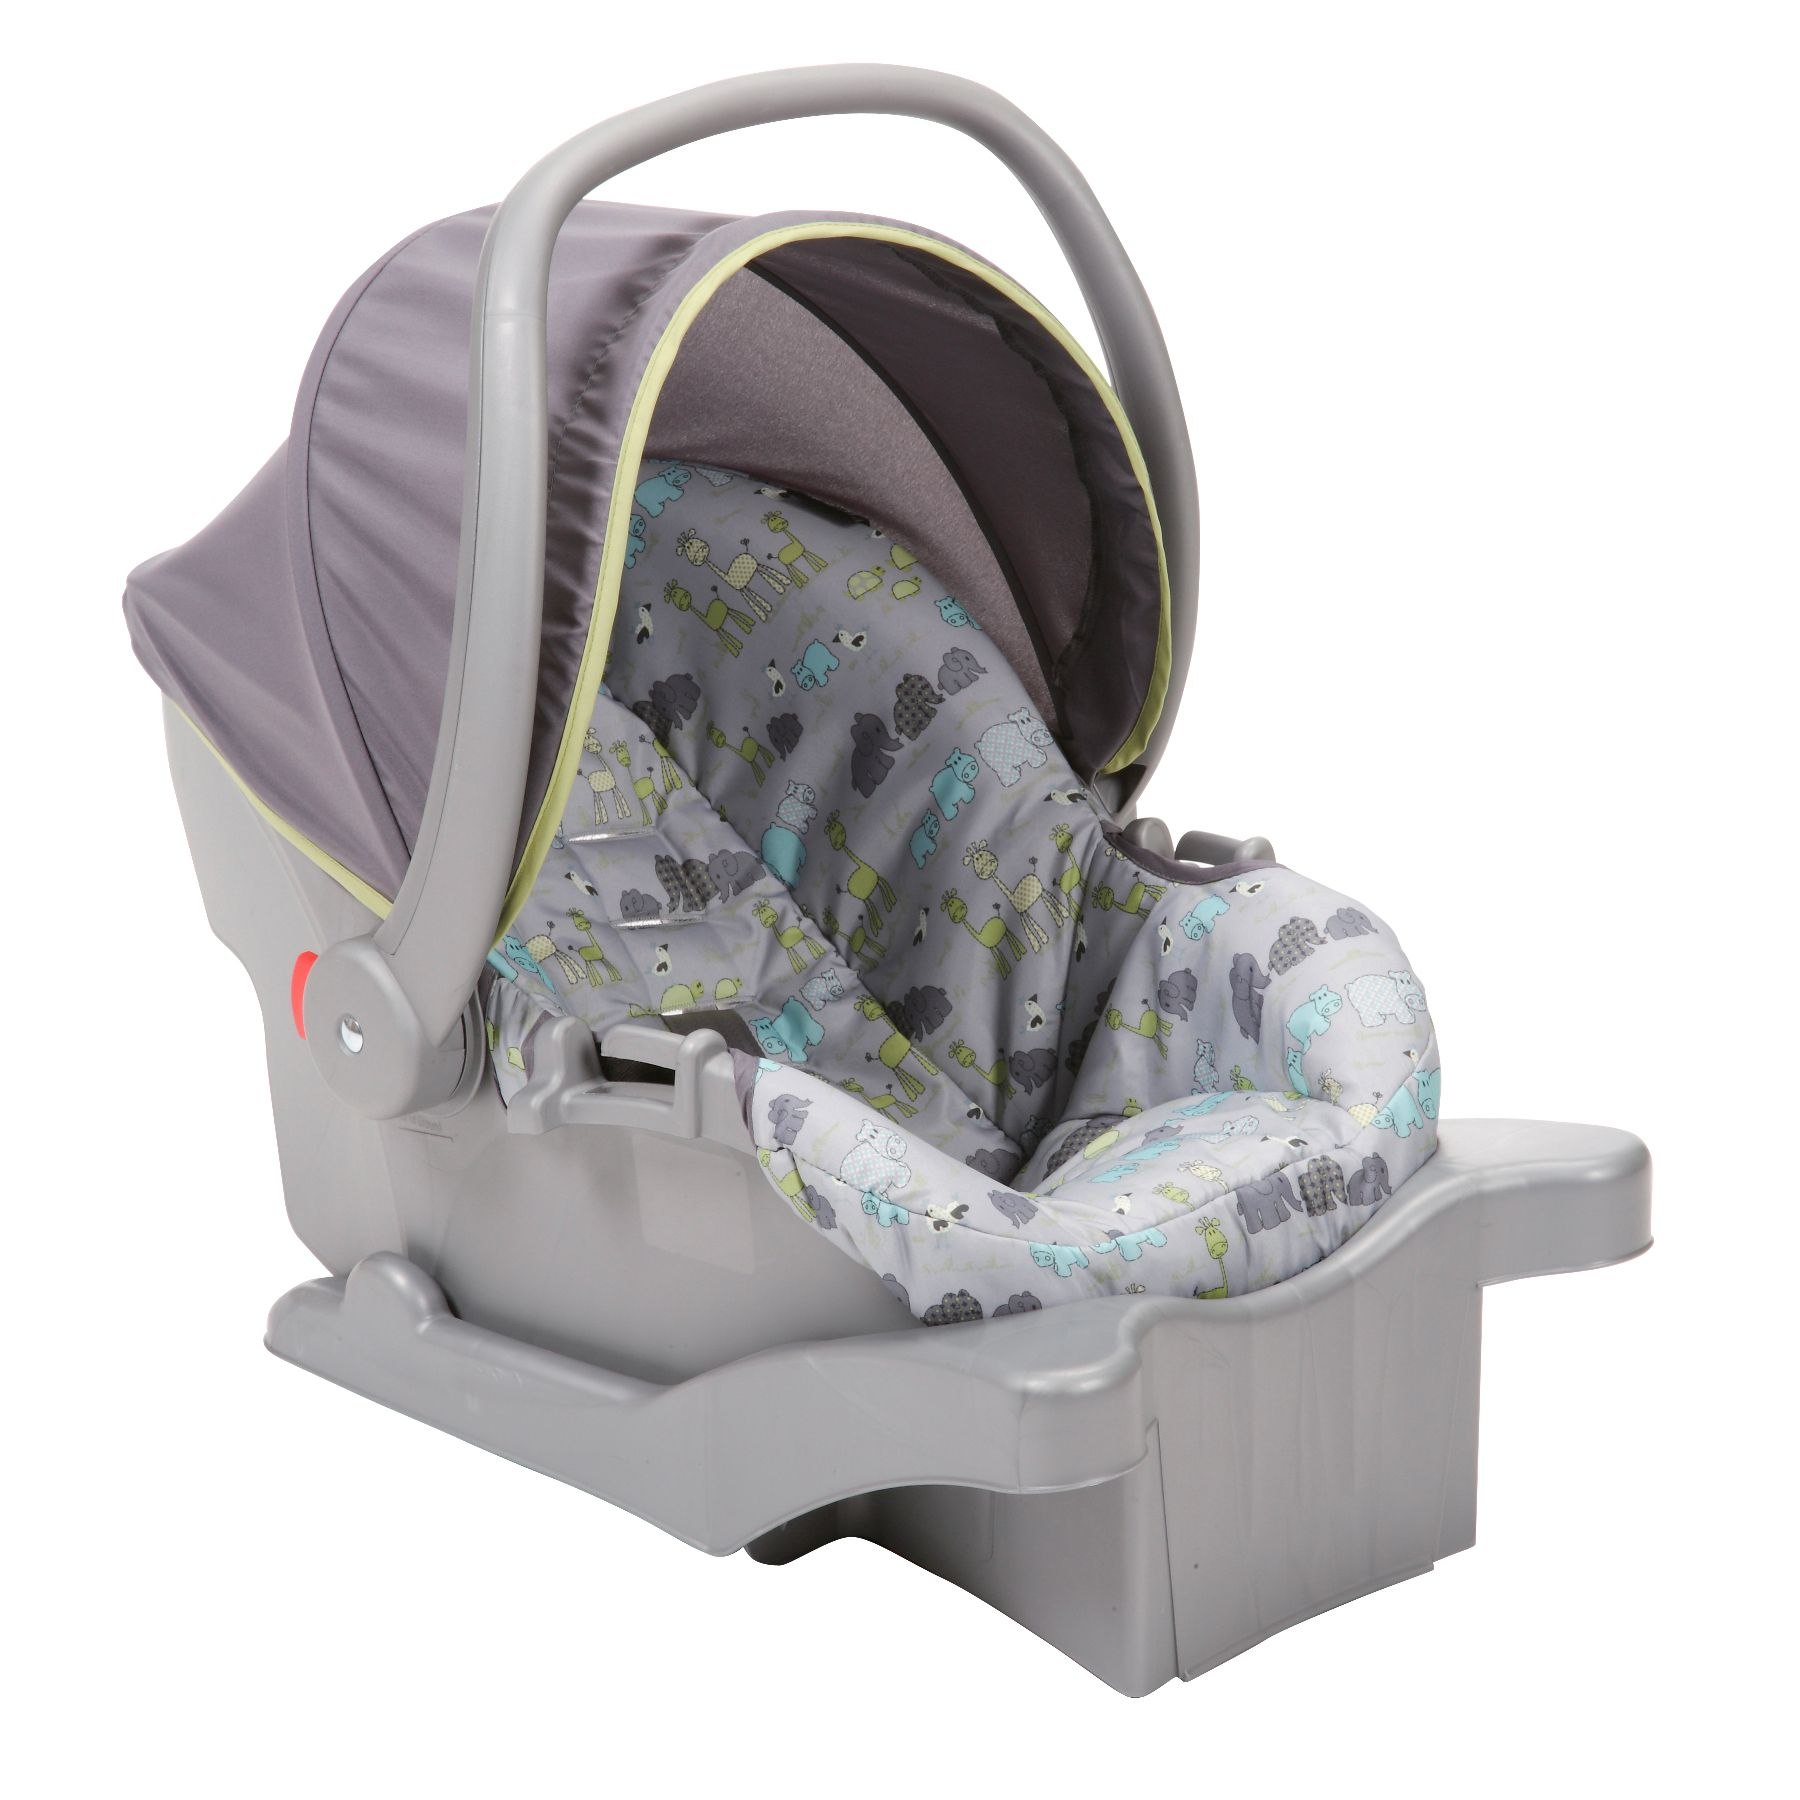 Comfy Carry Infant Seat - Jungle Parade II